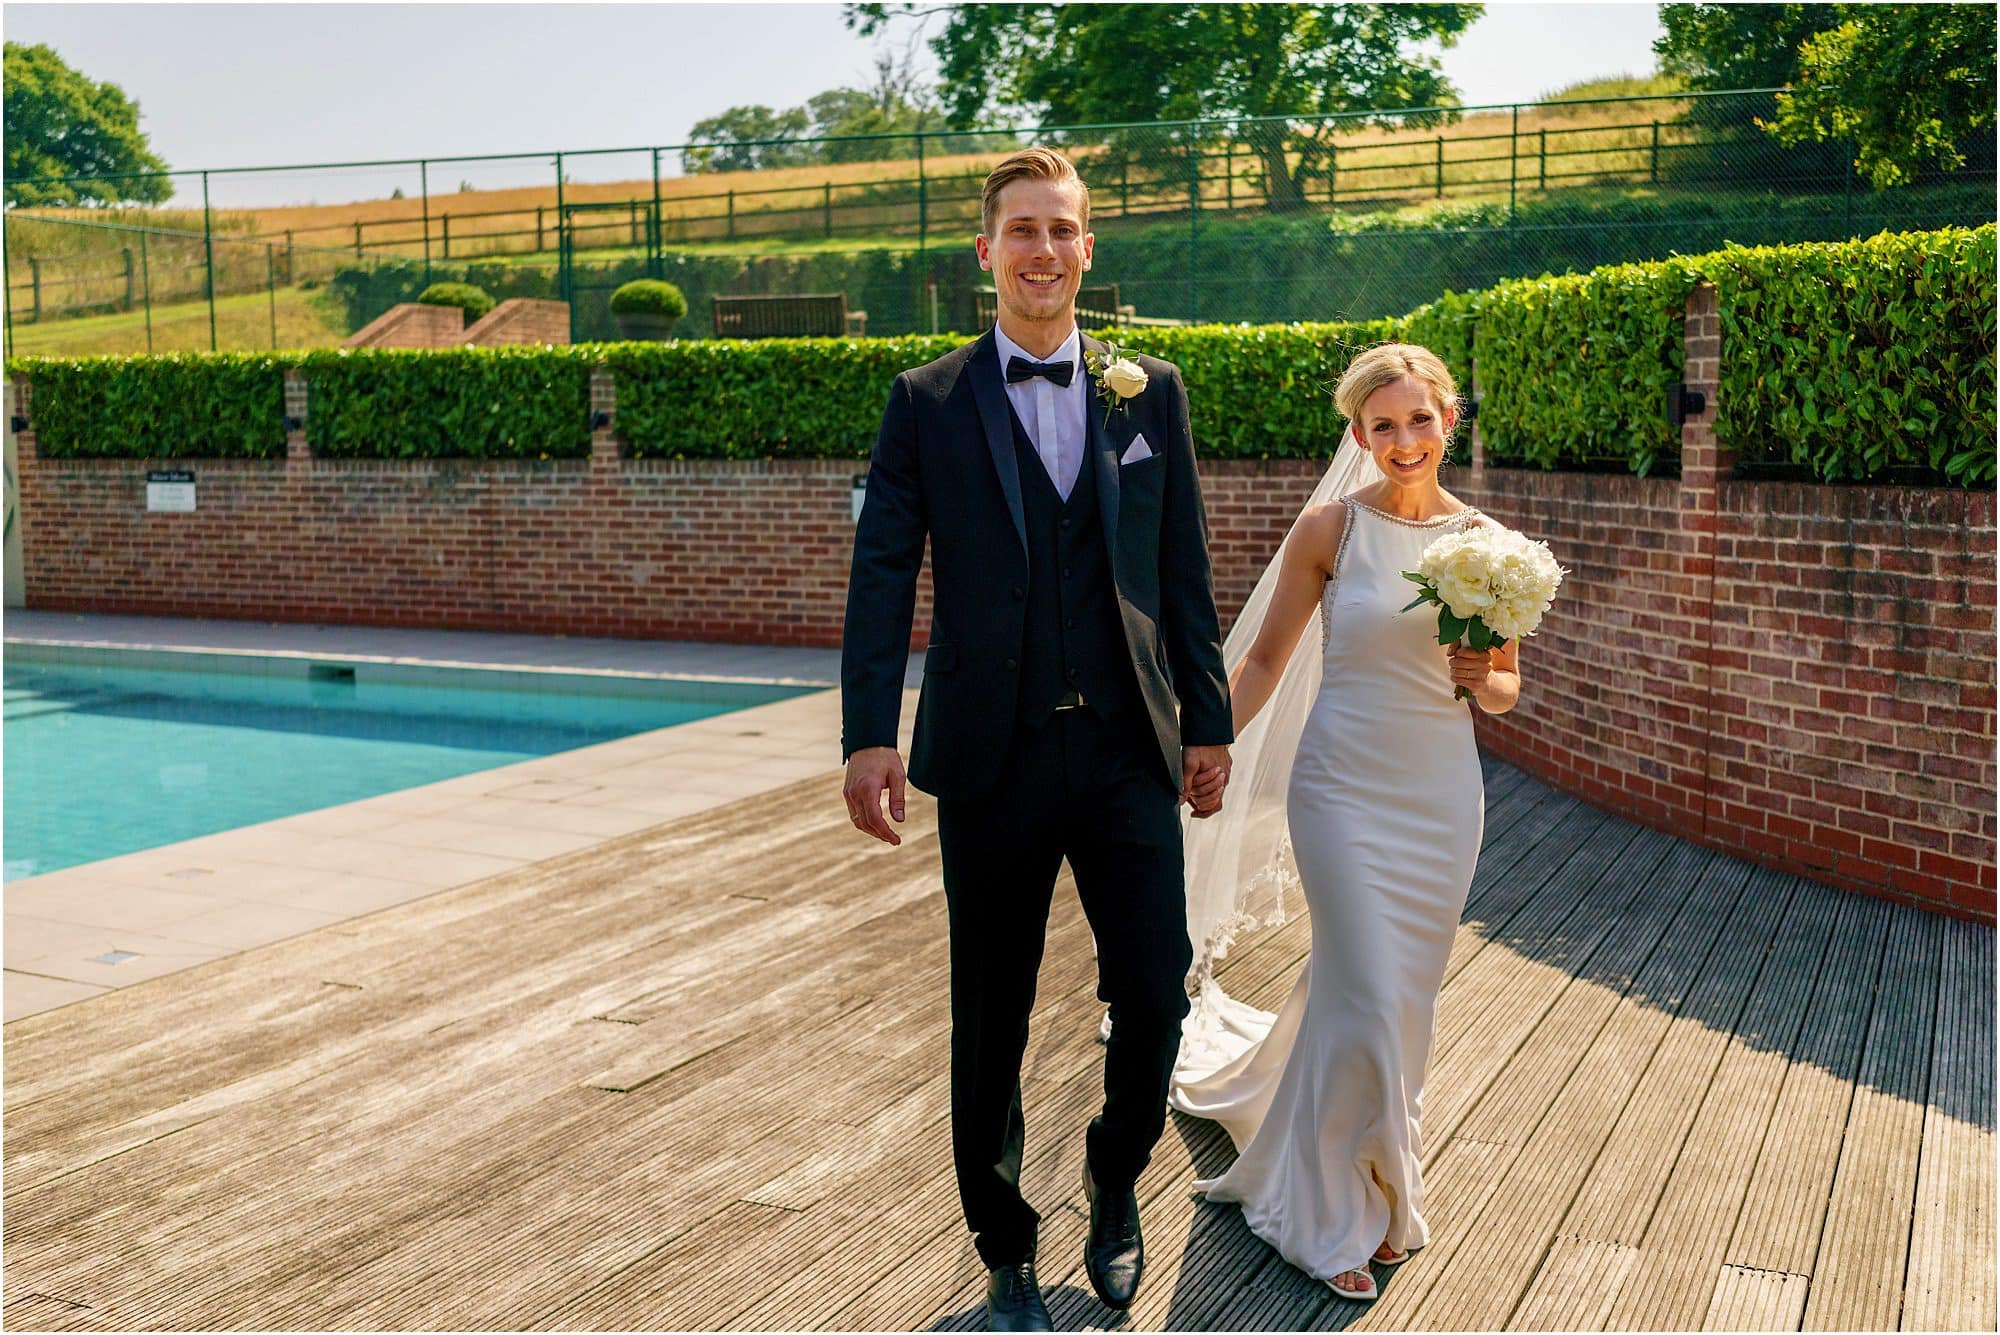 bride and groom leave the pool house